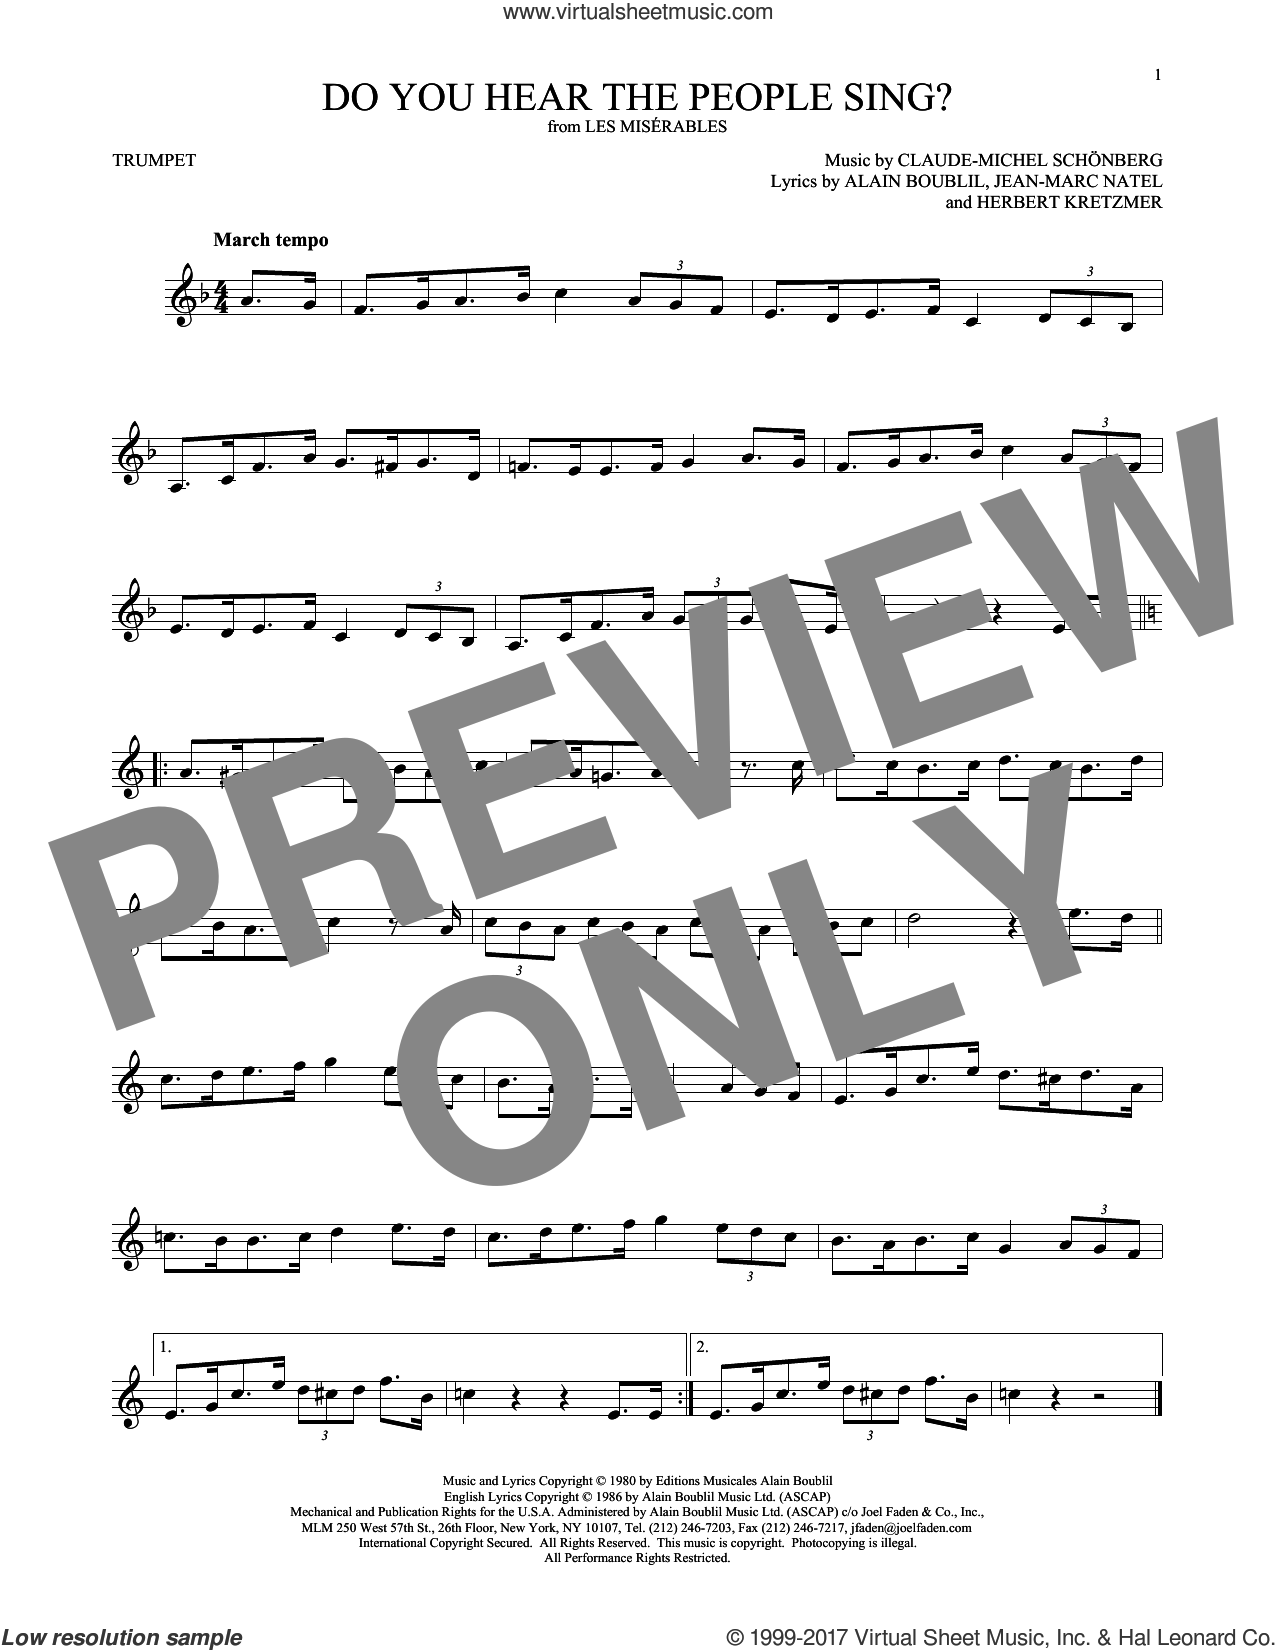 Do You Hear The People Sing? sheet music for trumpet solo by Alain Boublil, Claude-Michel Schonberg, Herbert Kretzmer and Jean-Marc Natel, intermediate skill level